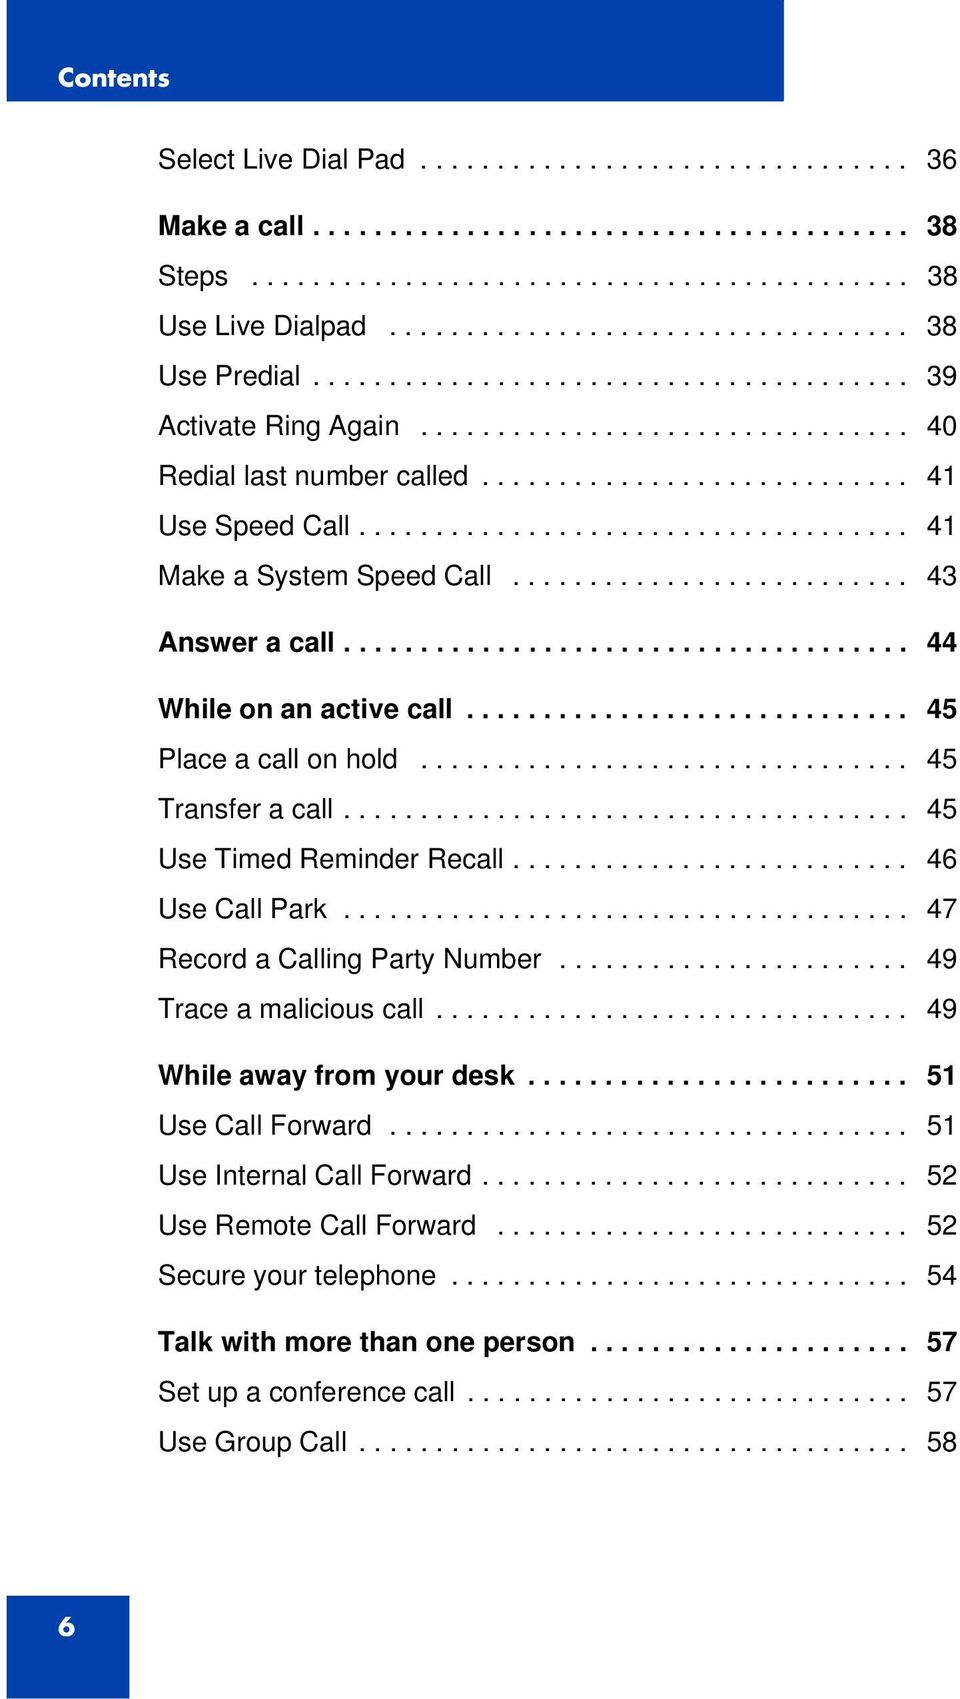 ................................... 41 Make a System Speed Call.......................... 43 Answer a call..................................... 44 While on an active call............................. 45 Place a call on hold.